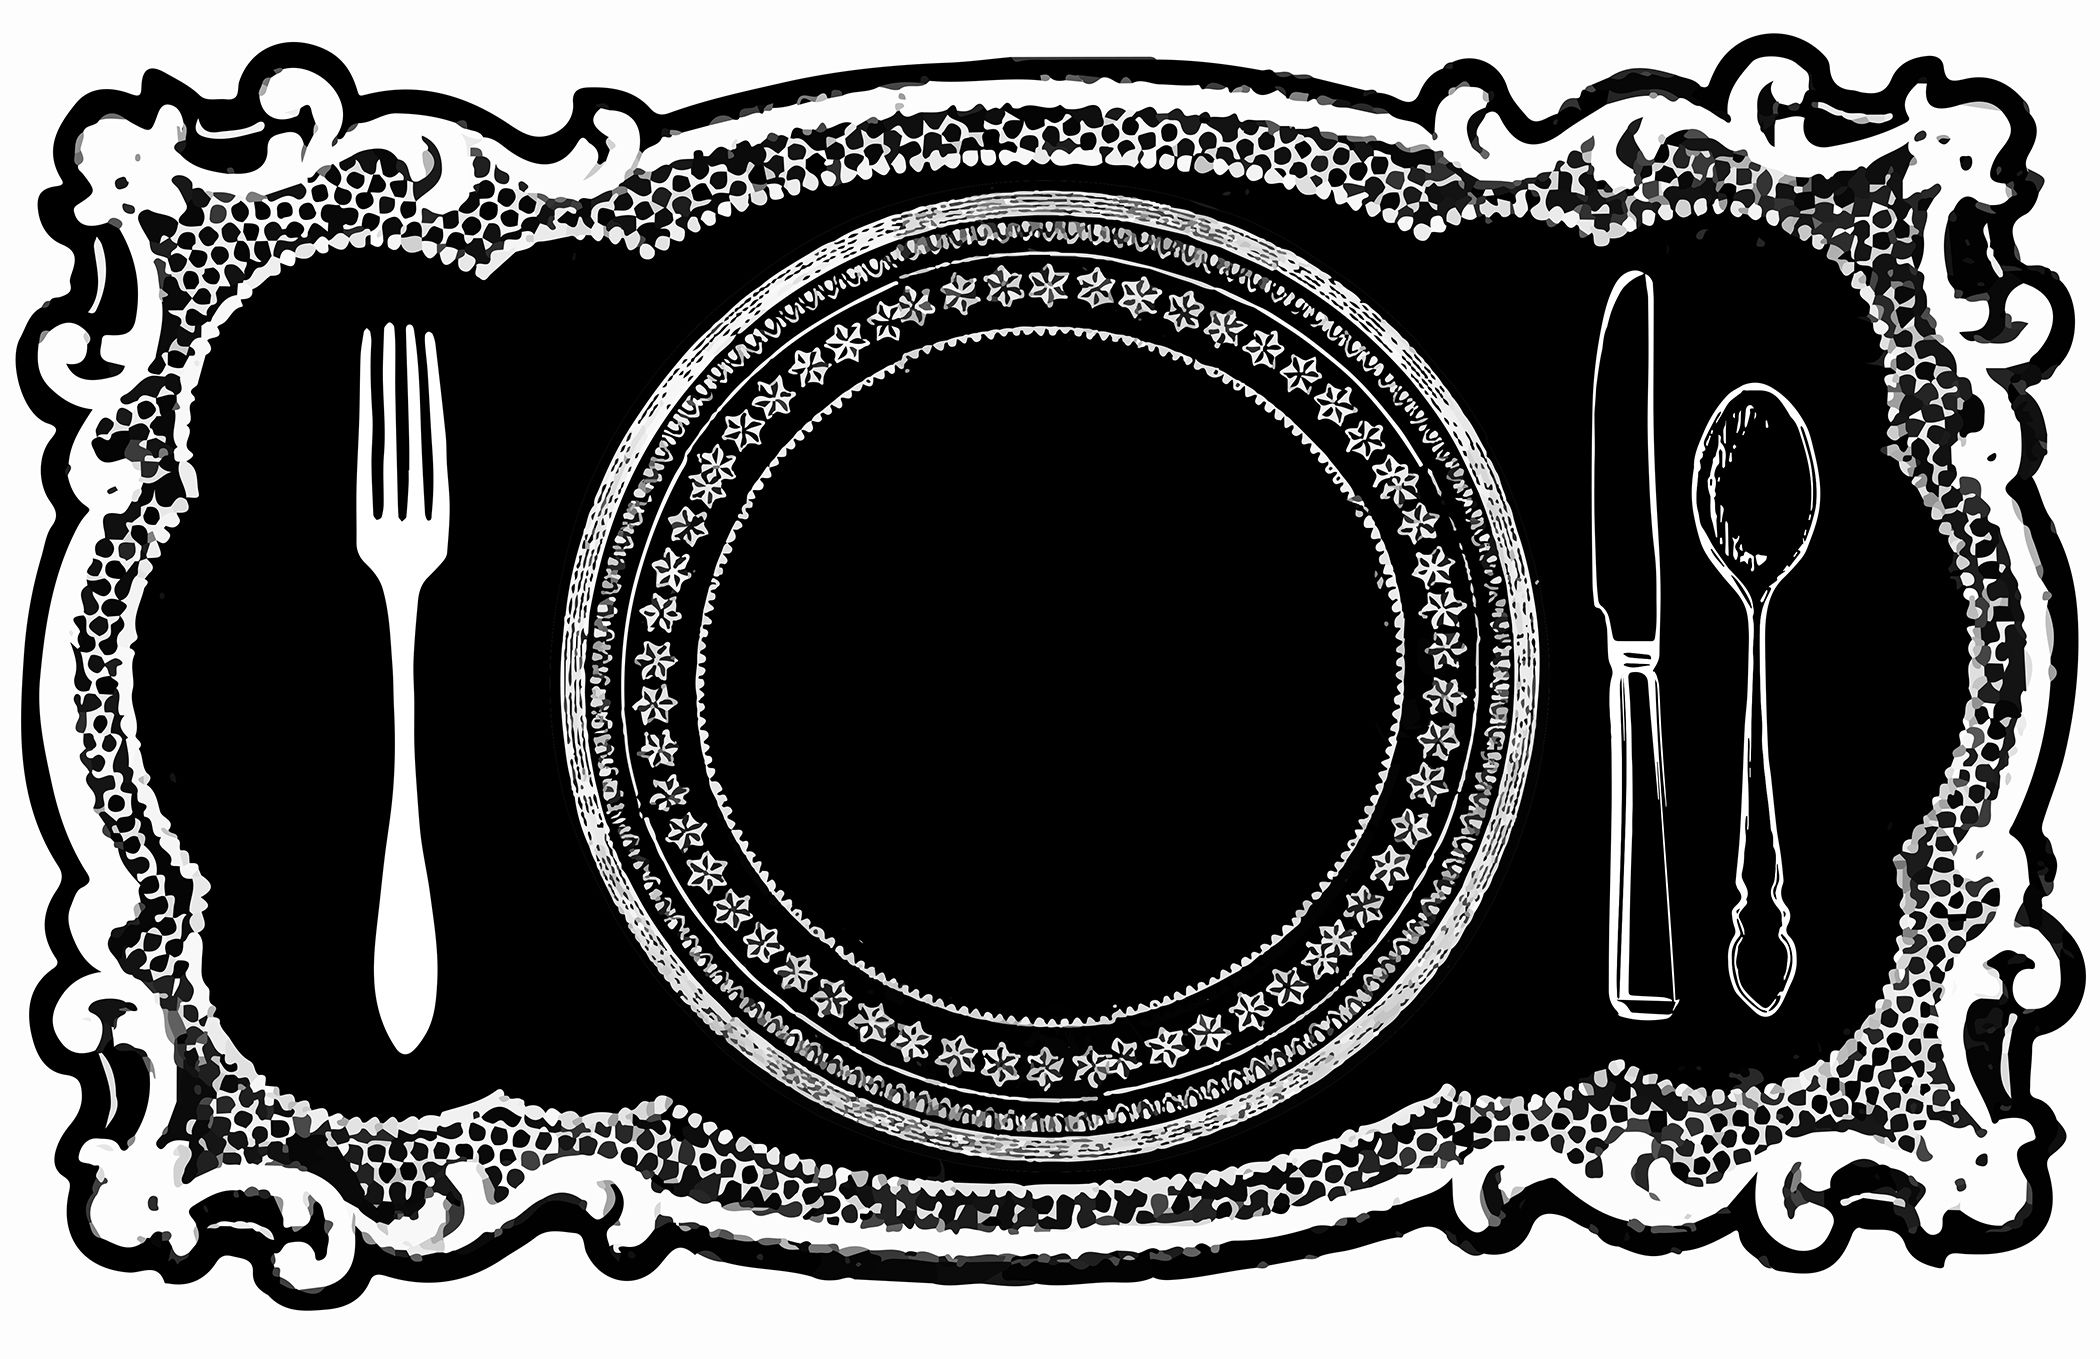 graphic about Printable Placemat Templates named Printable Placemat Giants Pilgrims